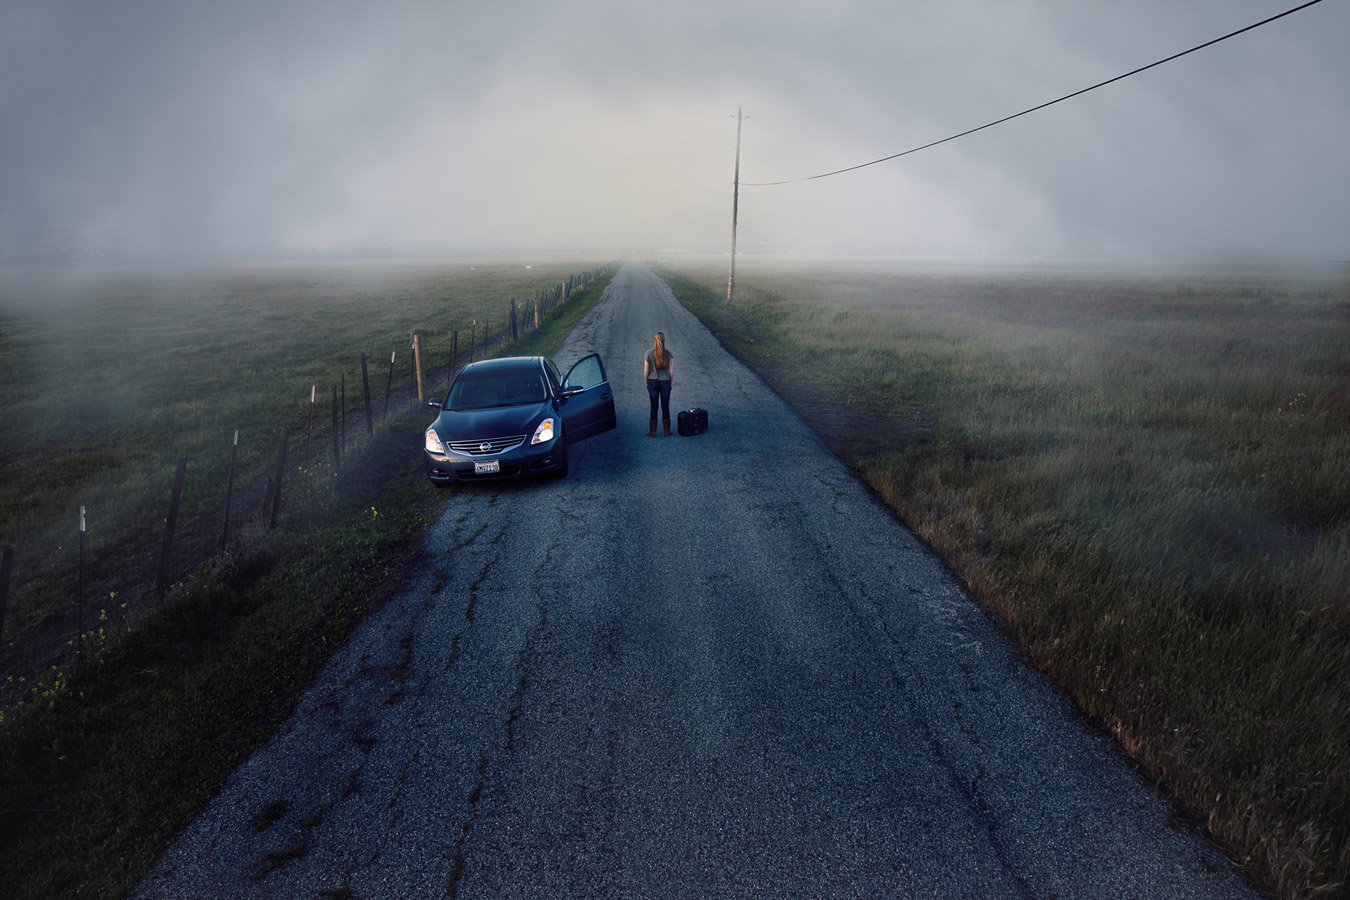 """Sometimes your road chooses you"", © Craig Colvin, San Jose, CA, United States, Ideas, One Life Awards"